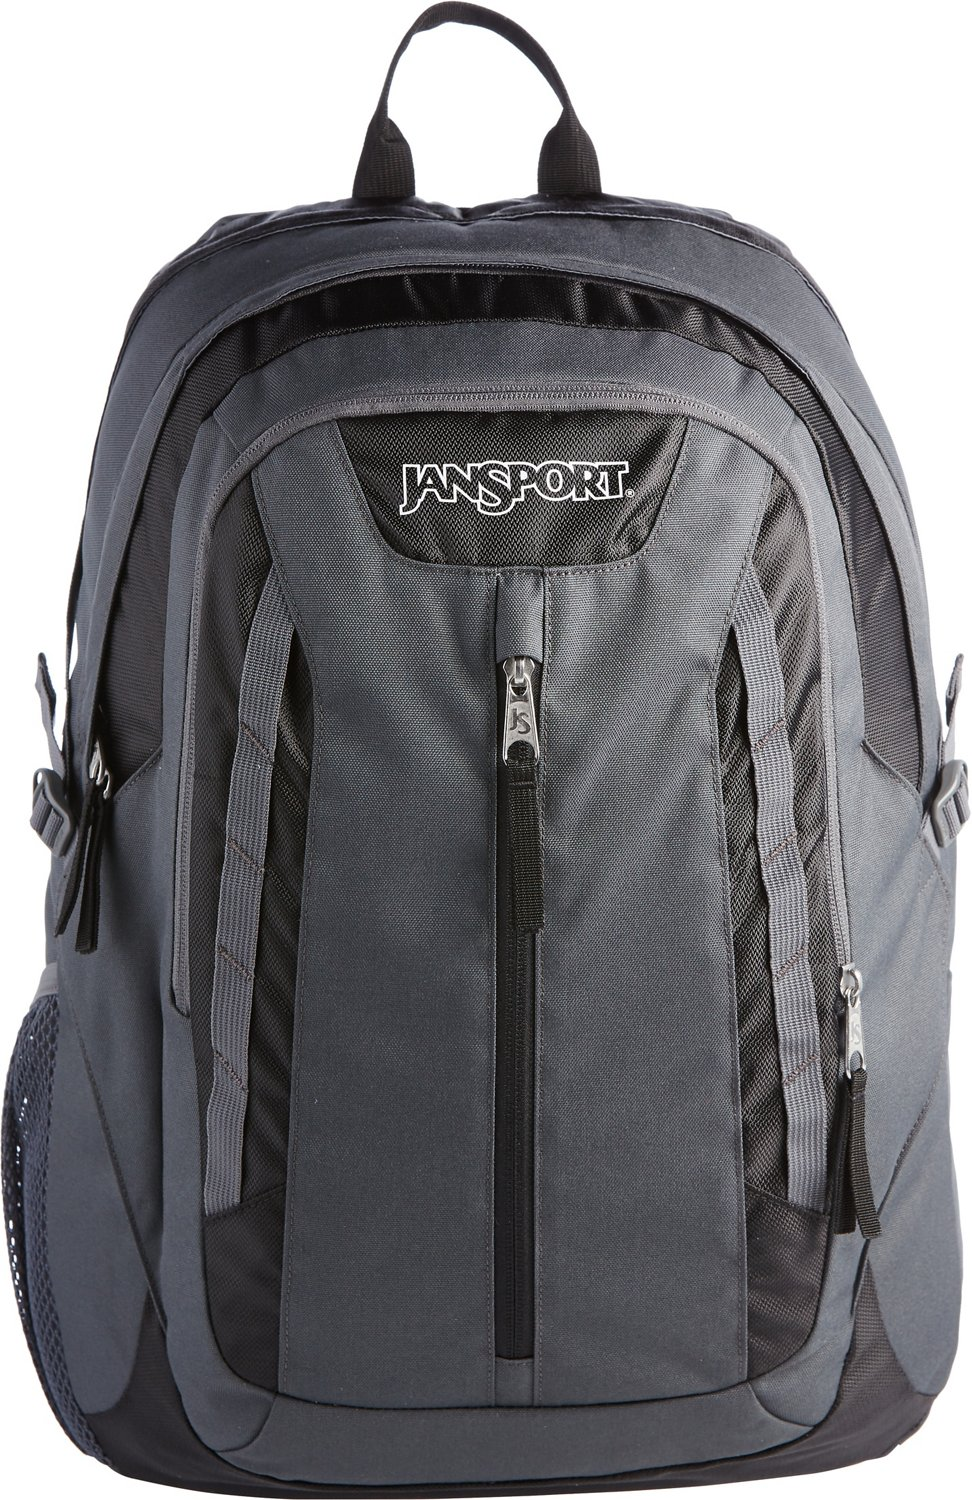 JanSport Tilden Backpack